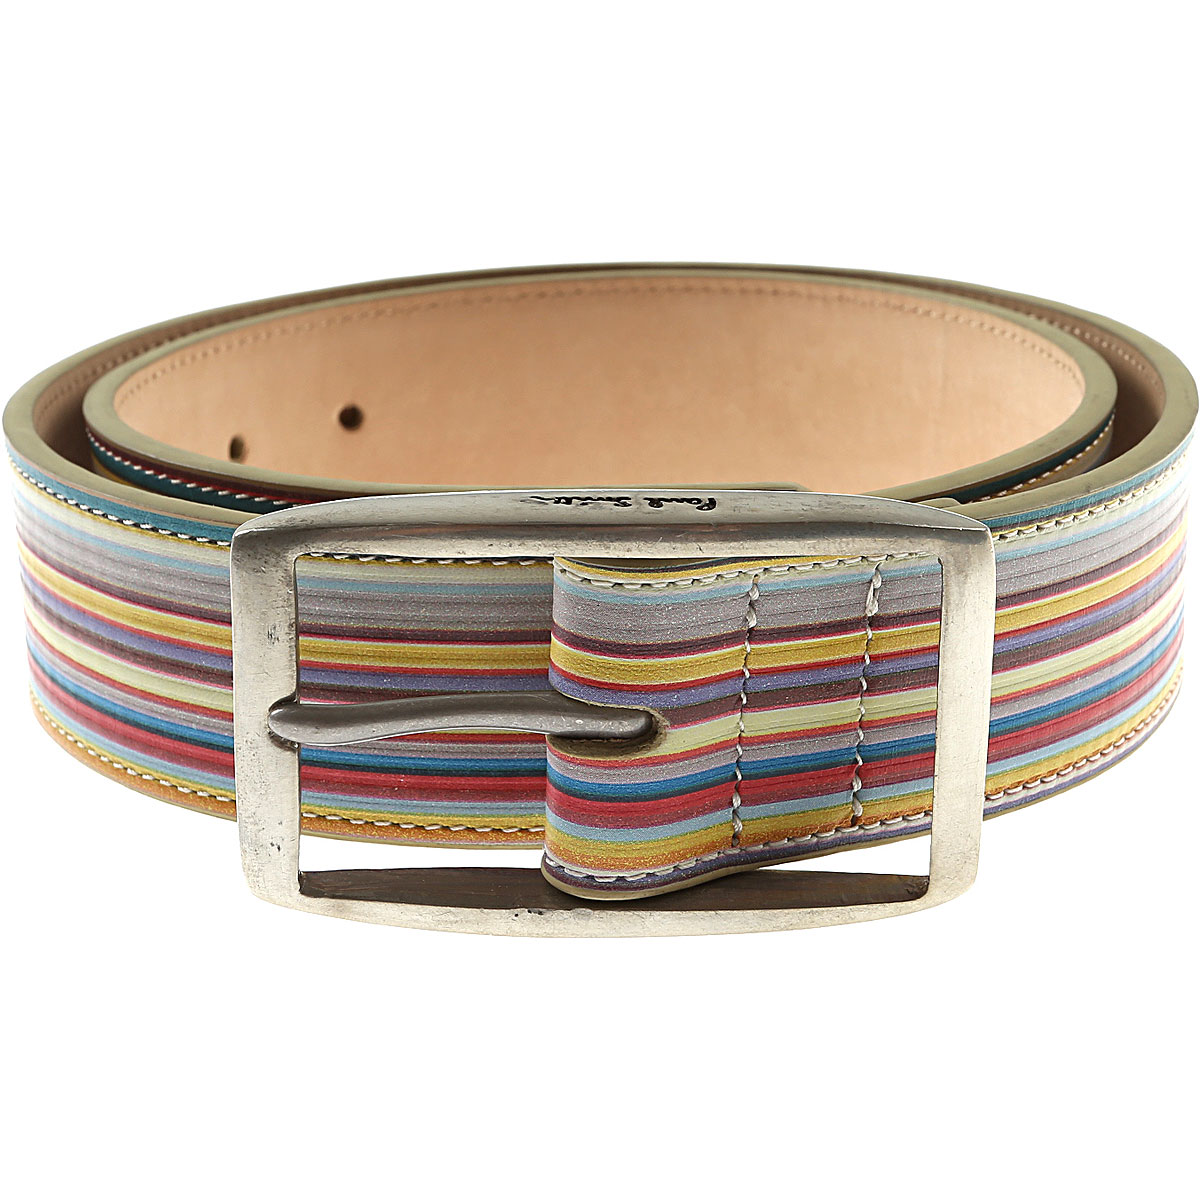 Paul Smith Mens Belts, Multicolor, Leather, 2017, 32 34 42